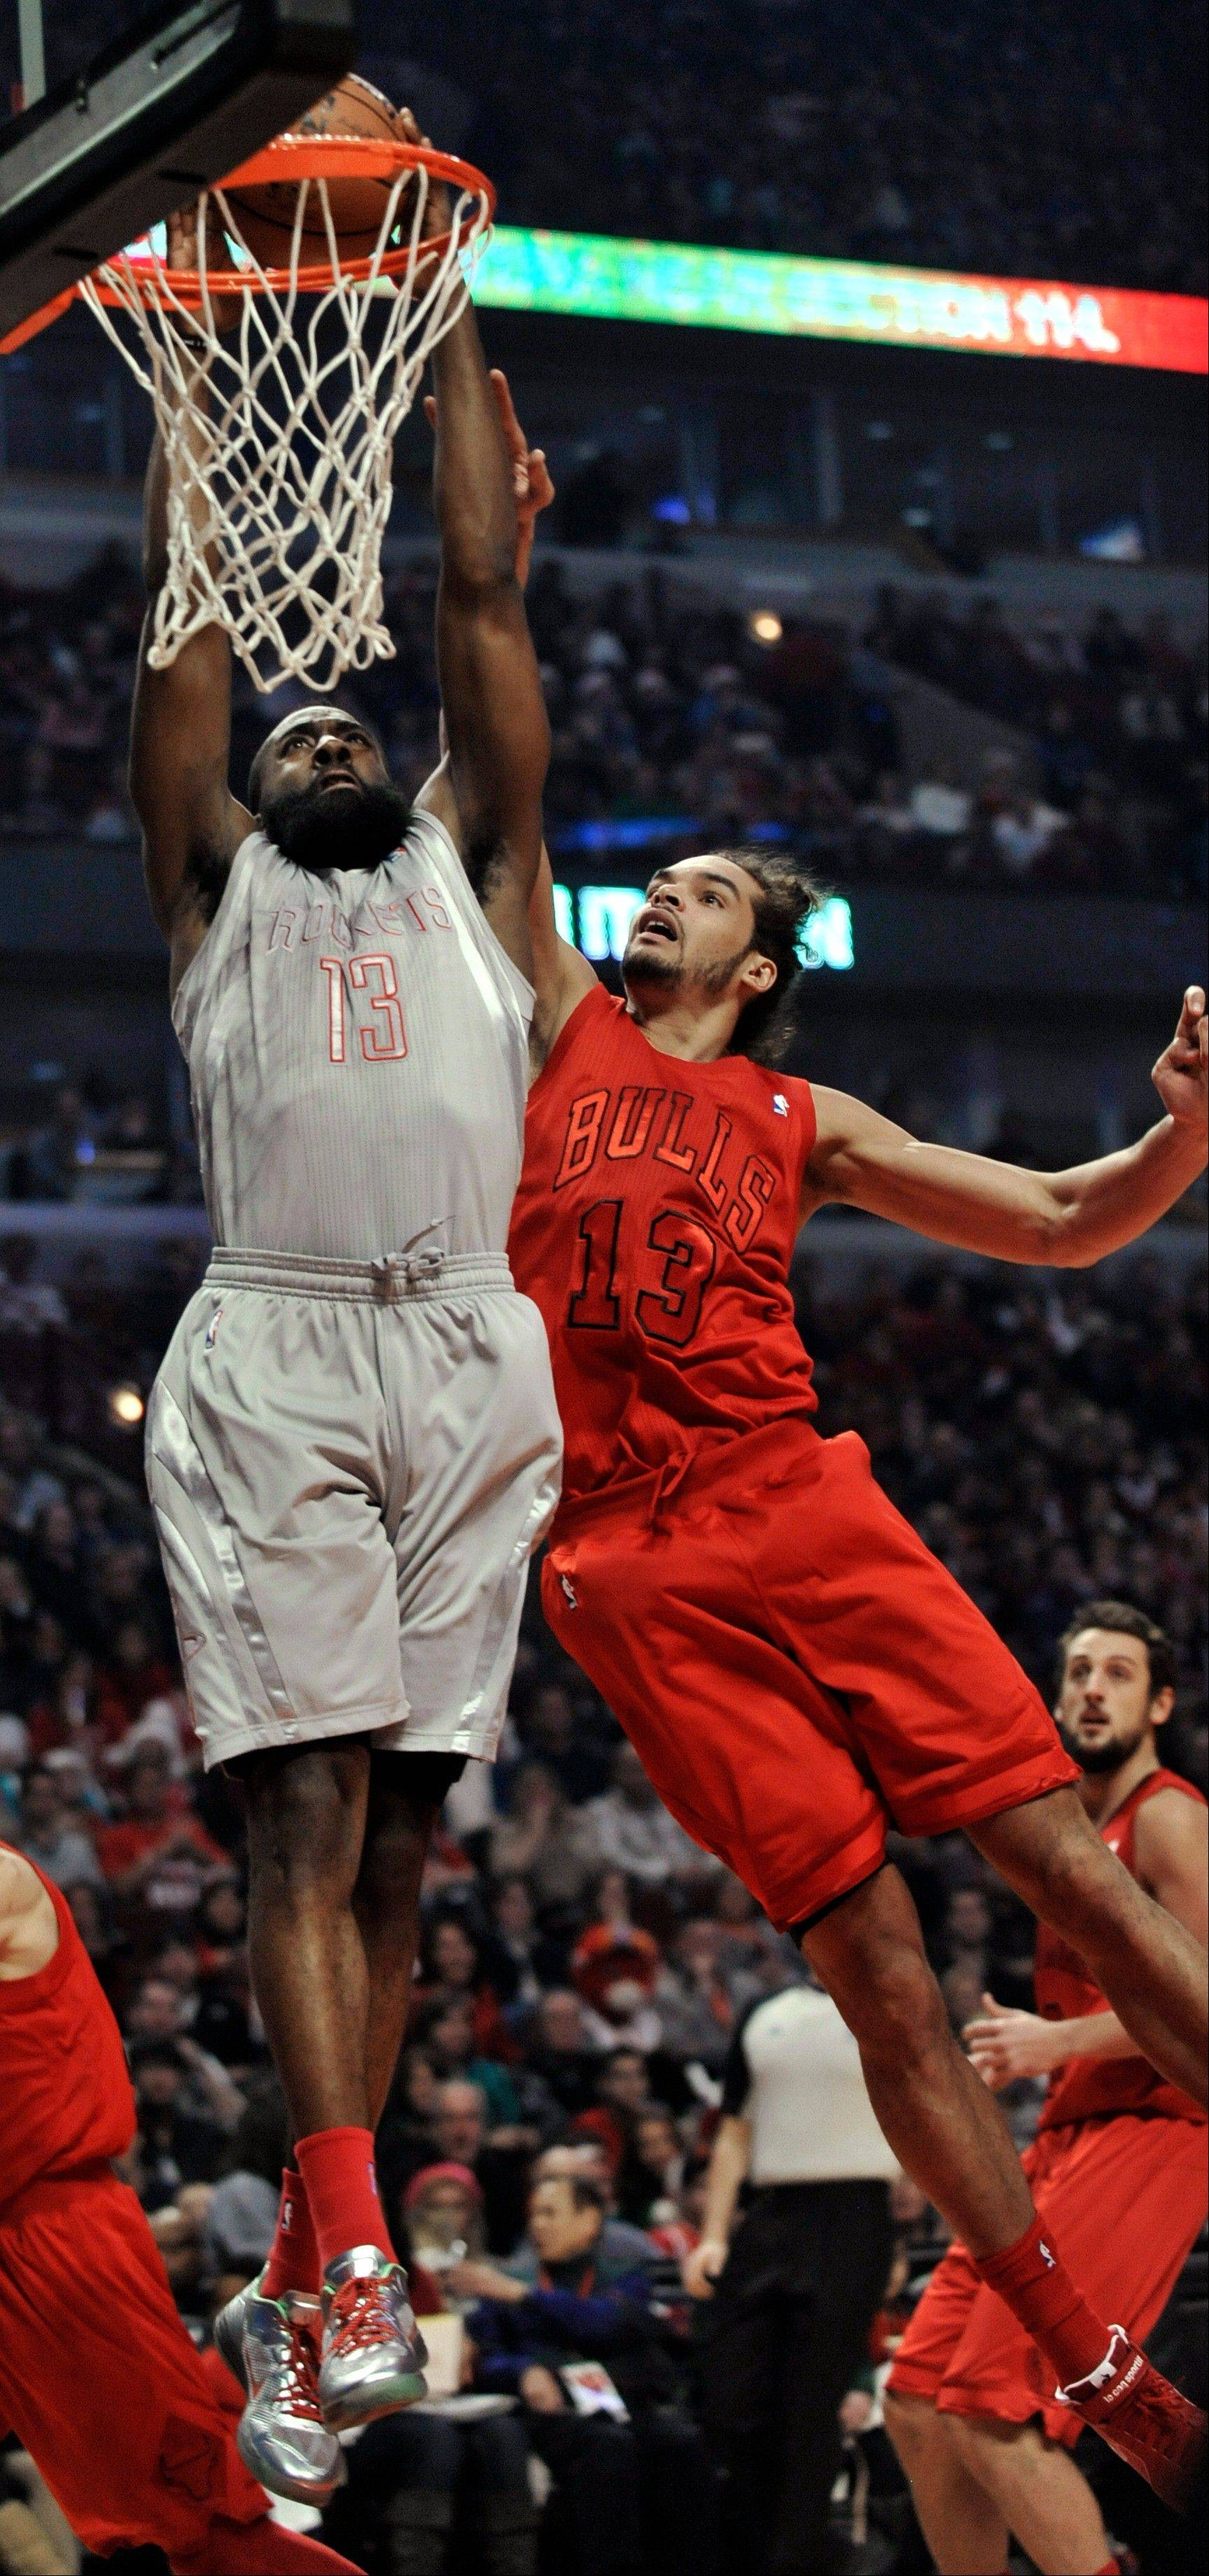 The Rockets� James Harden dunks over center Joakim Noah during the Bulls� 120-97 loss Tuesday night at the United Center.